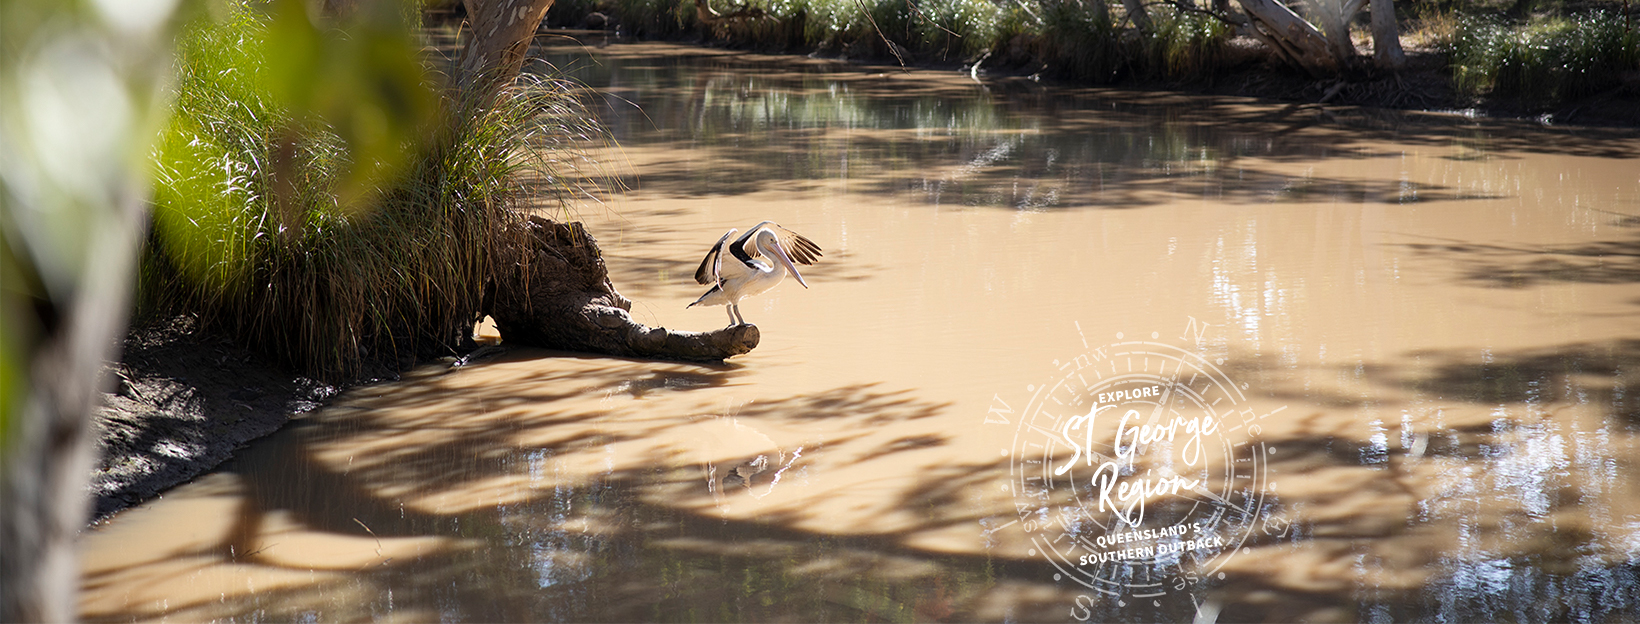 A pelican stands, flapping it's wings. The bird is perched on a log, which is partially submerged in a creek.